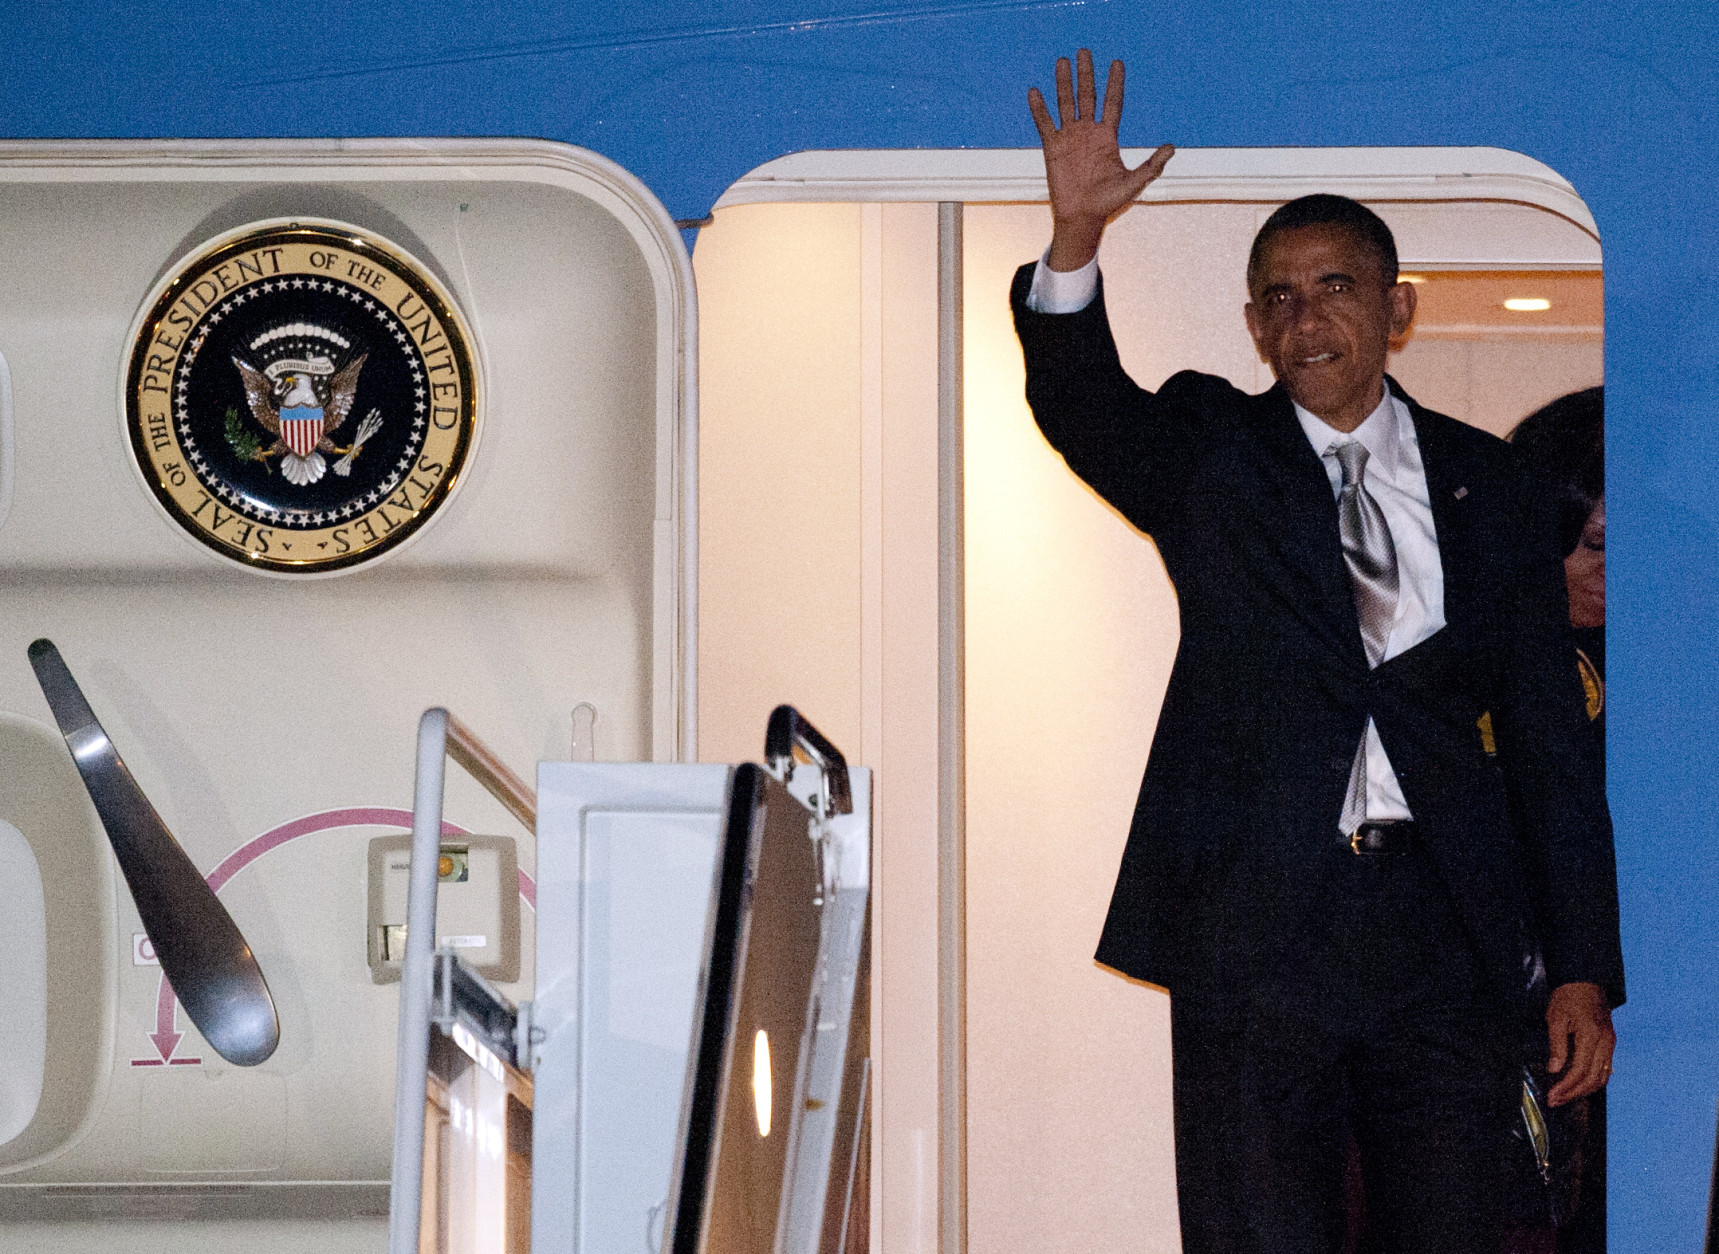 President Barack Obama exits Air Force One at Andrews Air Force Base, Md., the day after he was re-elected President, Wednesday, Nov. 7, 2012. (AP Photo/Cliff Owen)